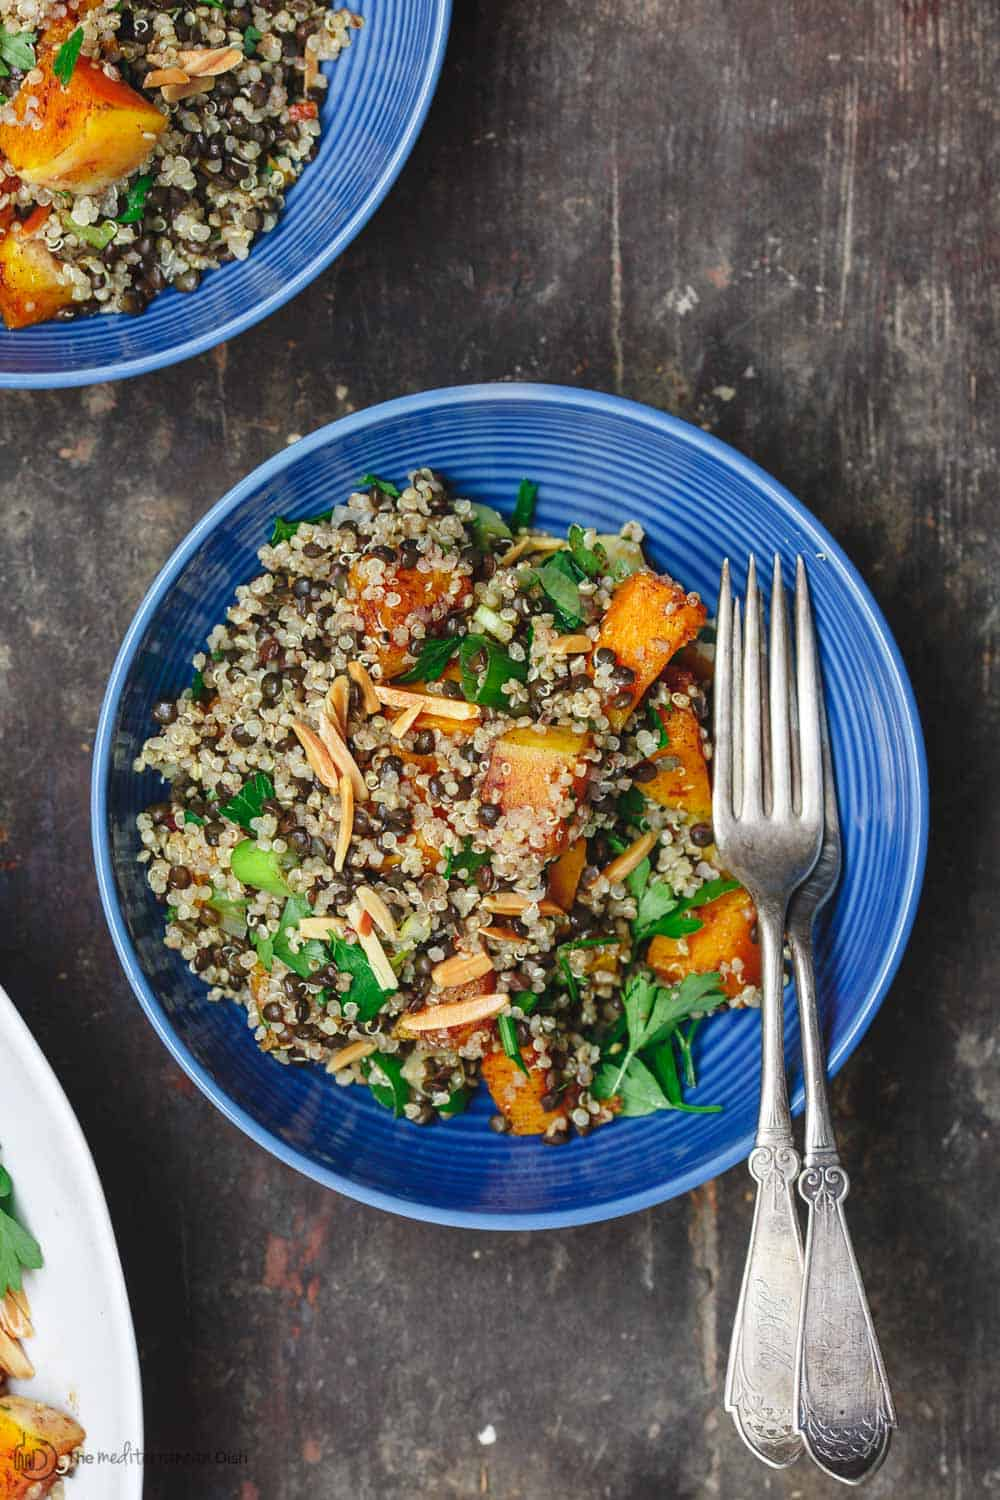 Easy Roasted Butternut Squash Recipe with lentils and quinoa. This makes a great lunch bowl, topped with toasted almonds